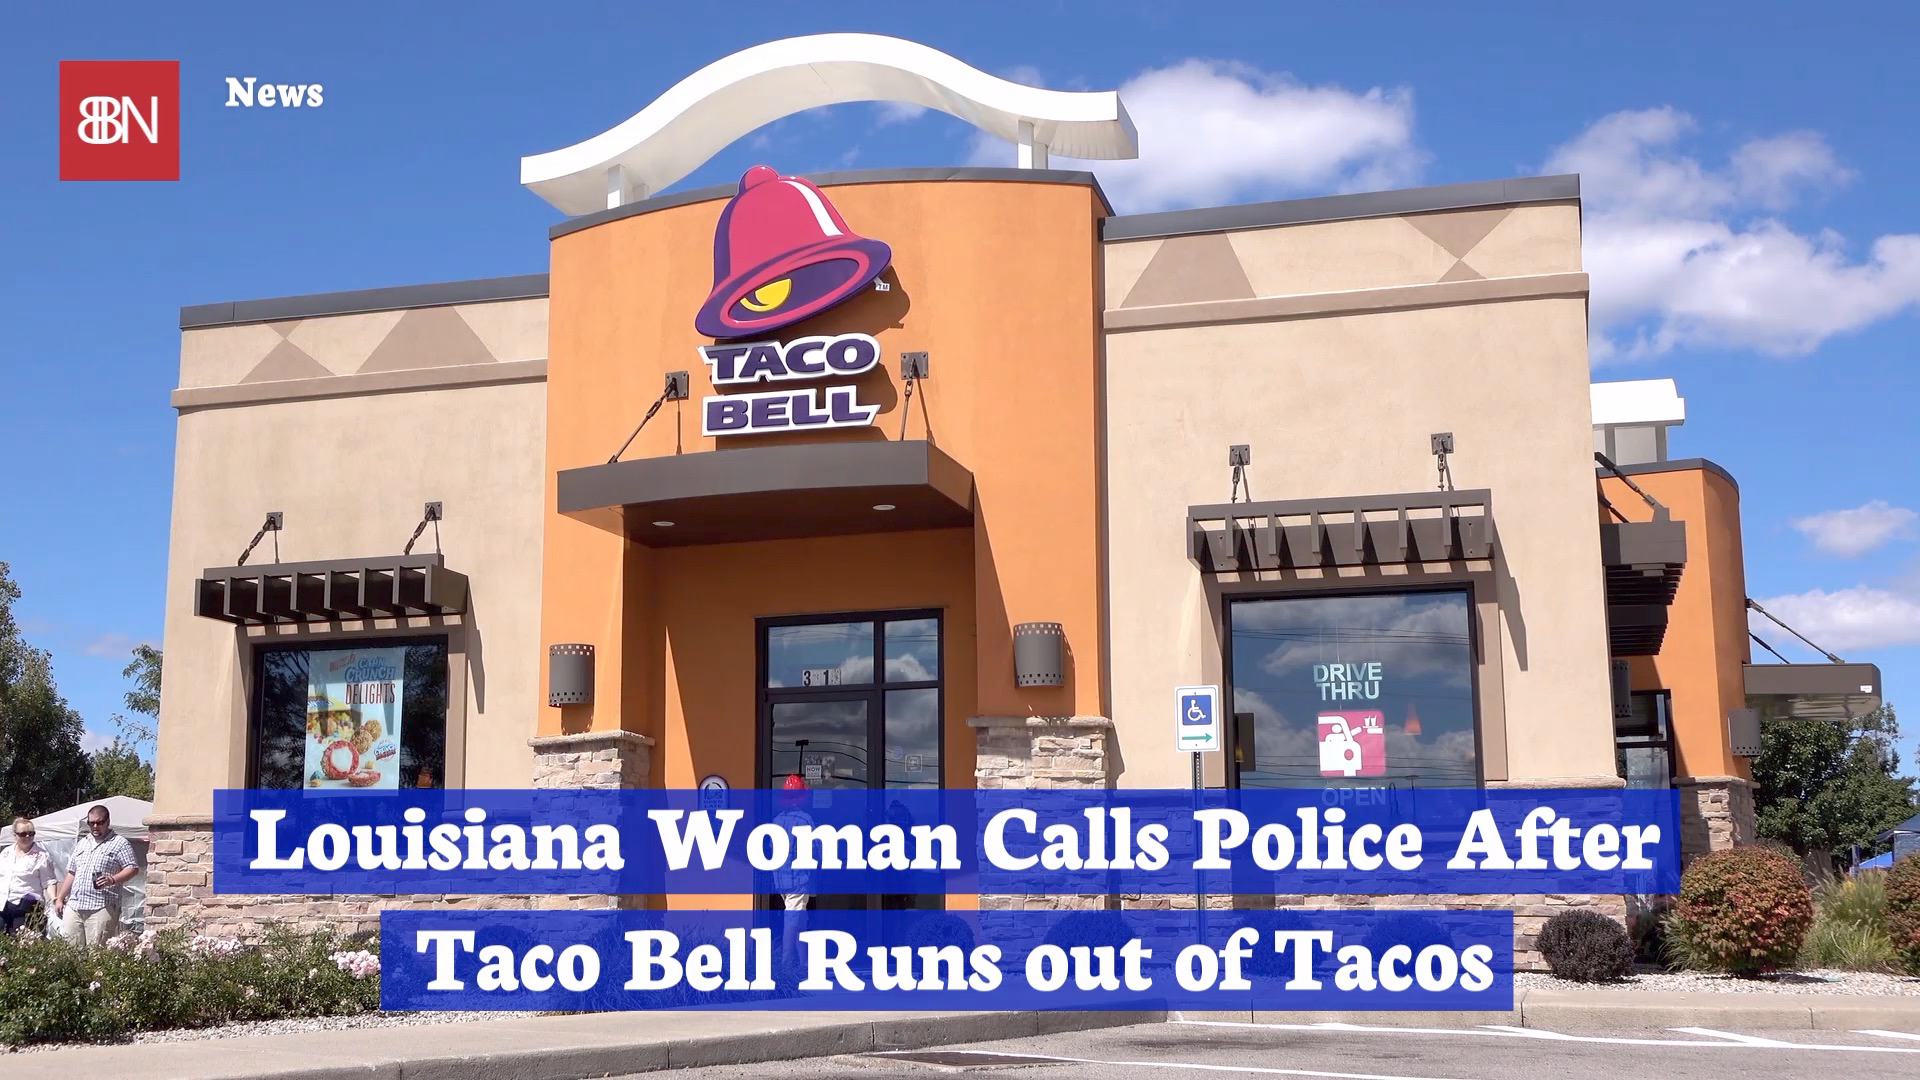 Watch Out For The Taco Police